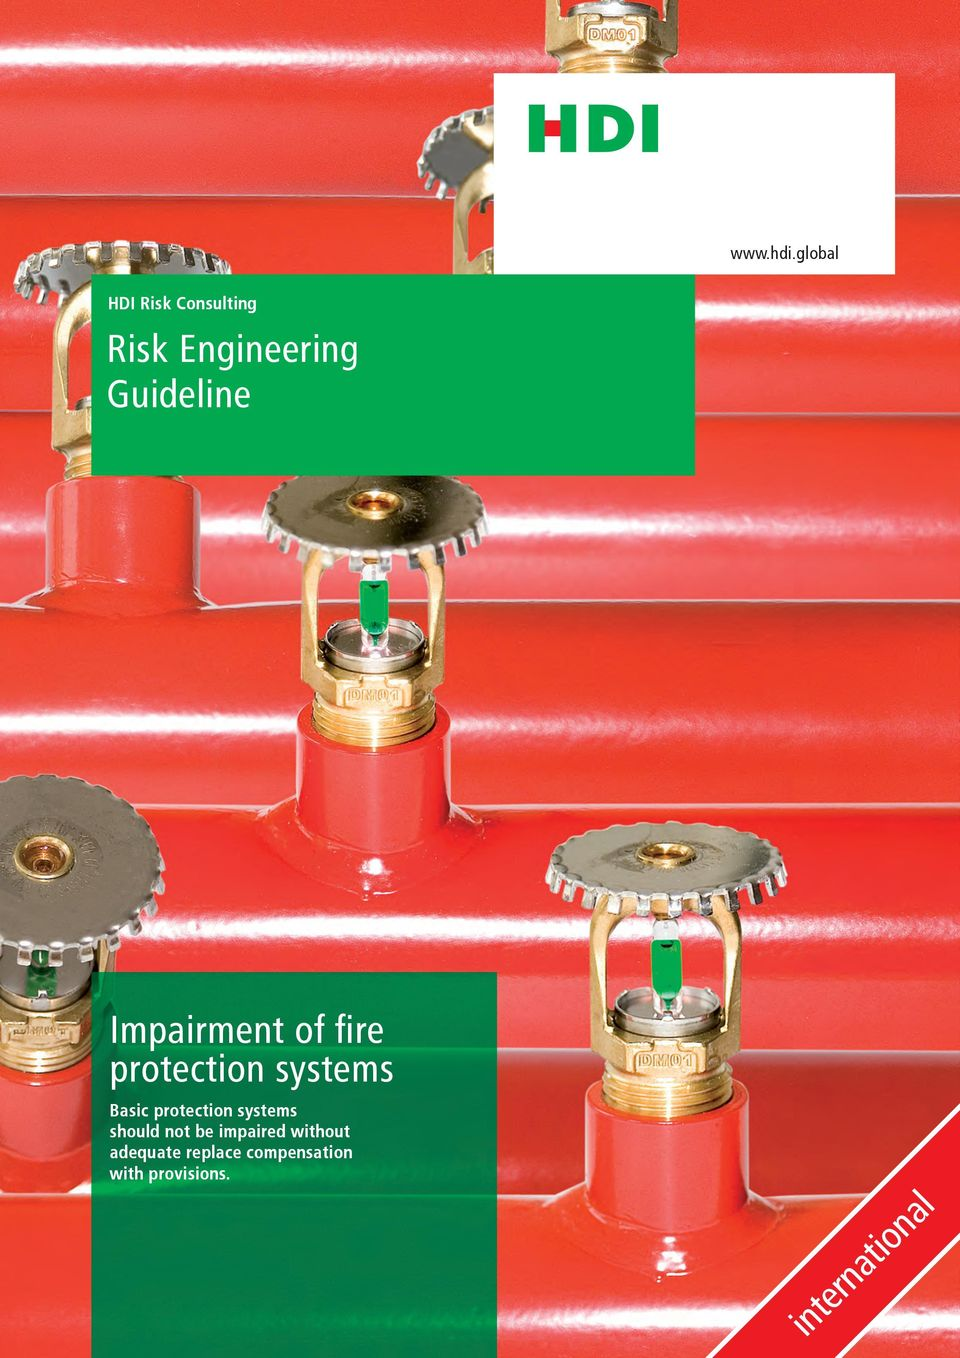 Impairment of fire protection systems Basic